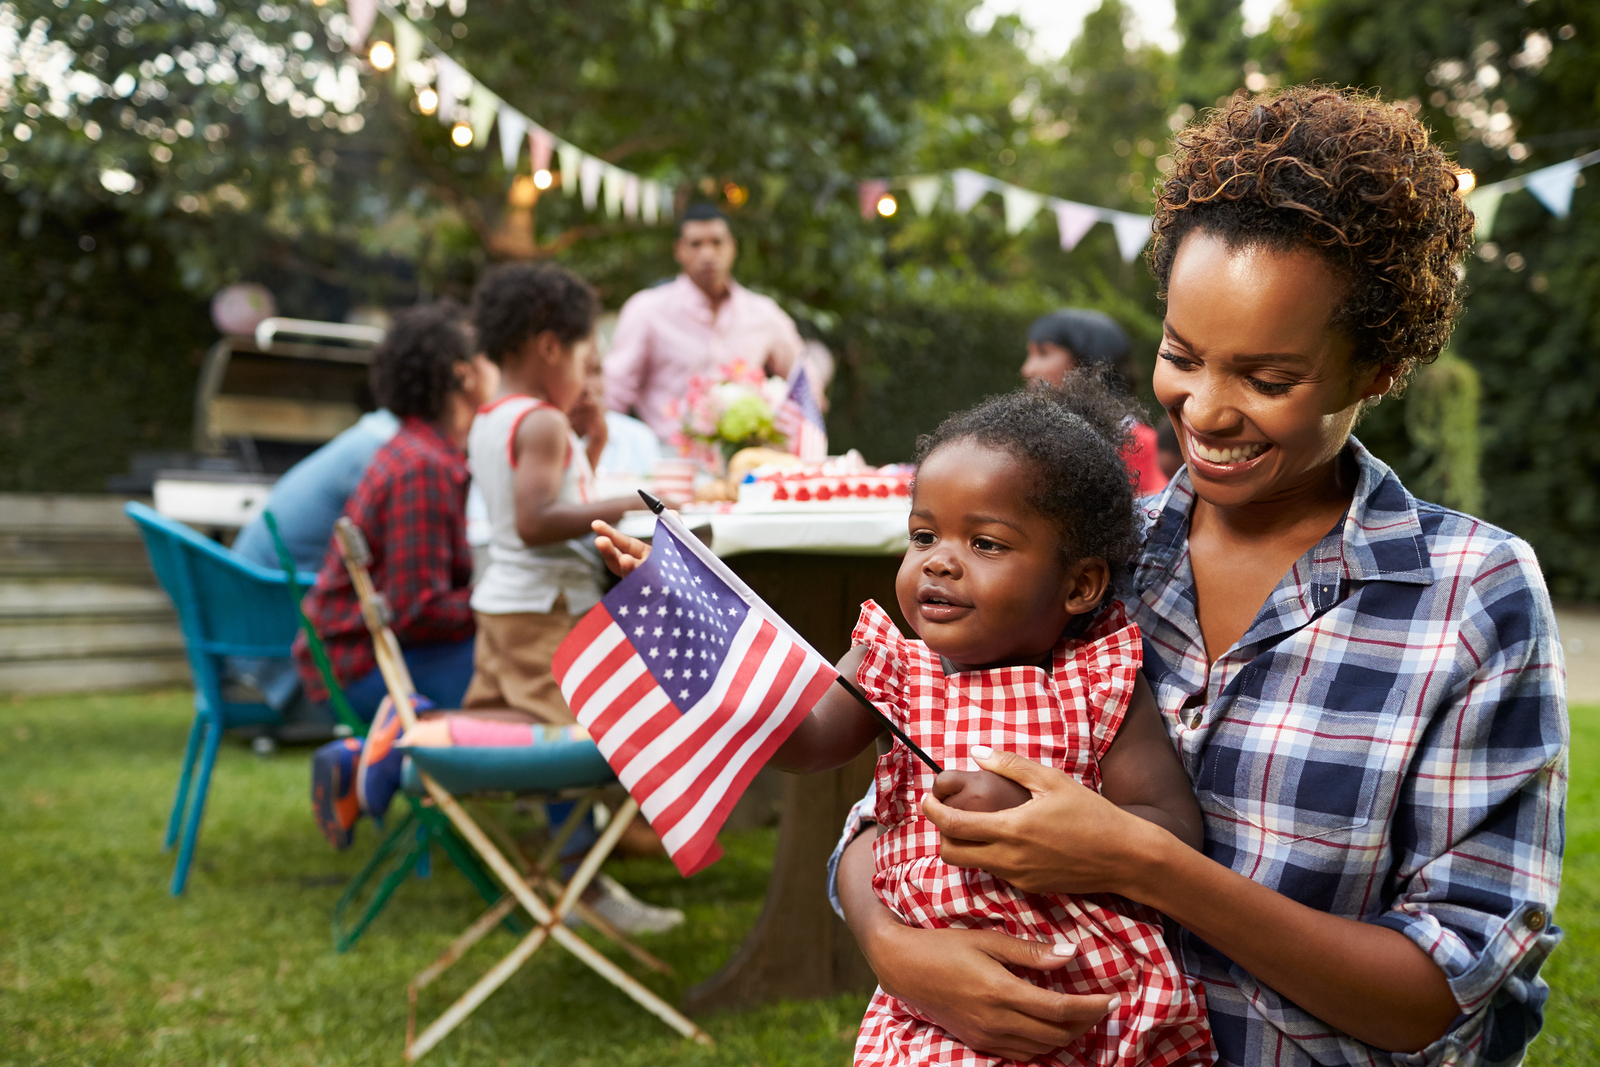 Top 10 Family-Friendly Gift Ideas to Celebrate 4th of July